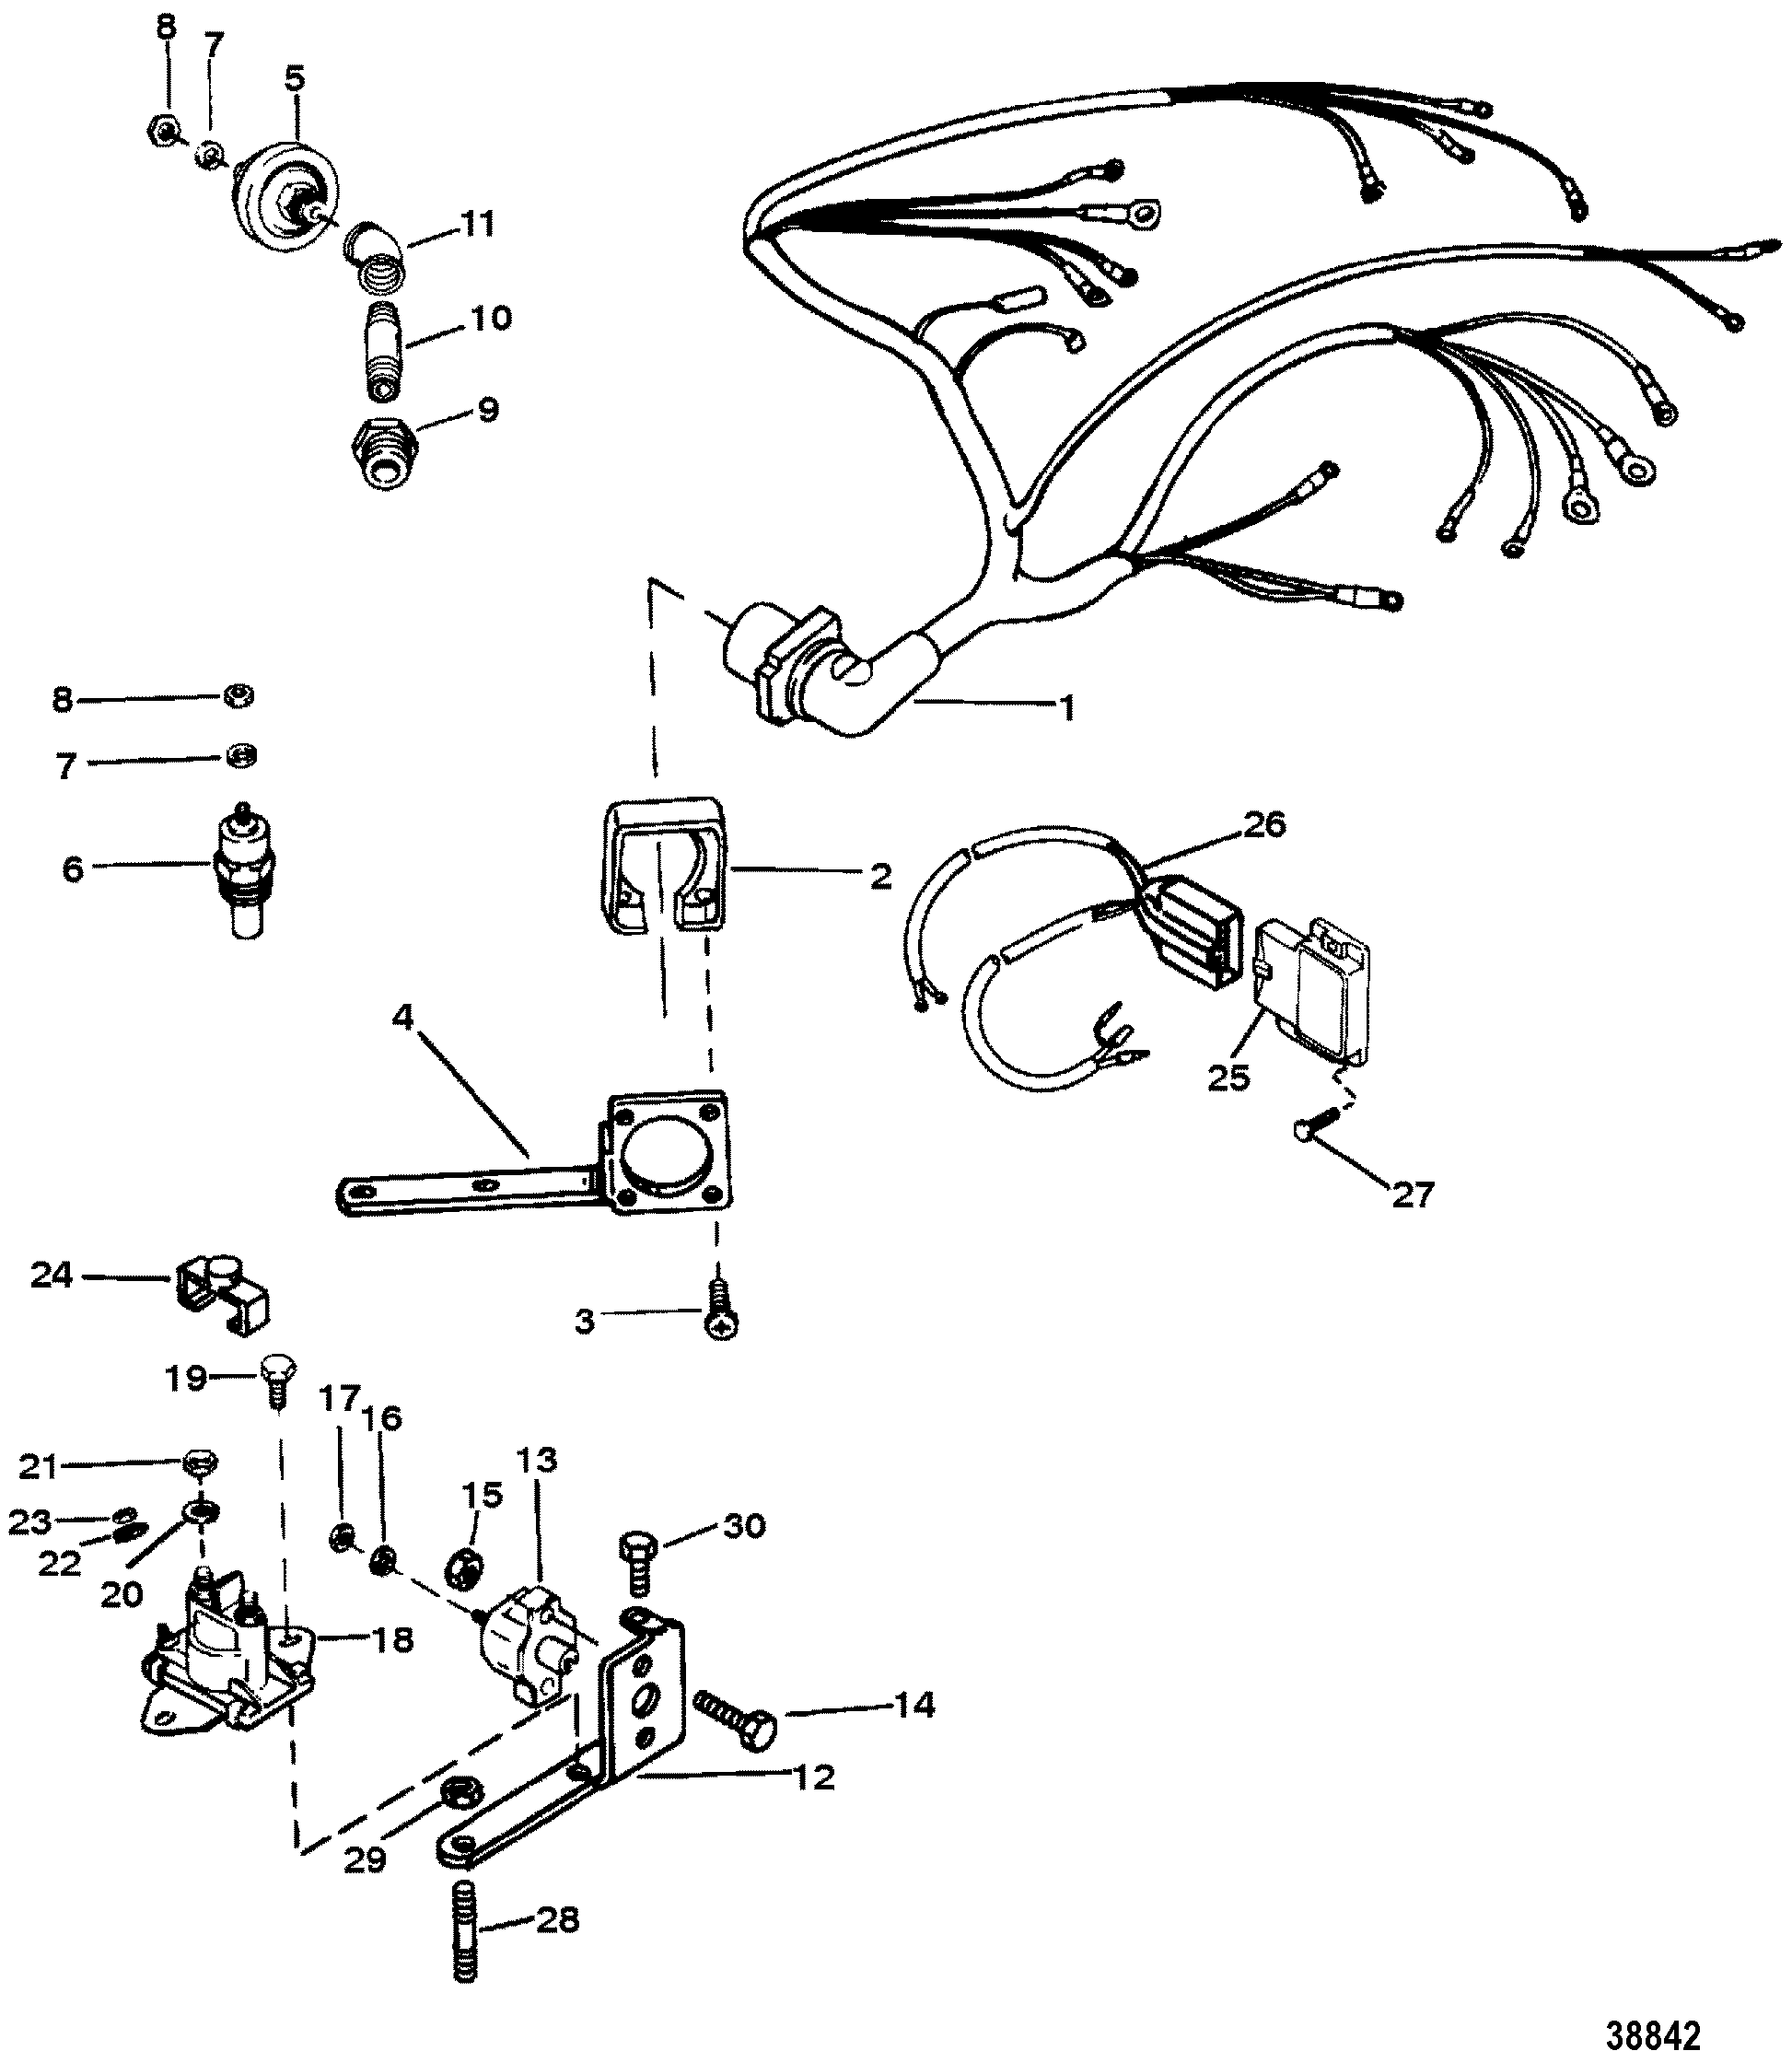 mercruiser wiring diagram 7 4 motorguide trolling motor parts harness electrical mounted on distributor tb iv for